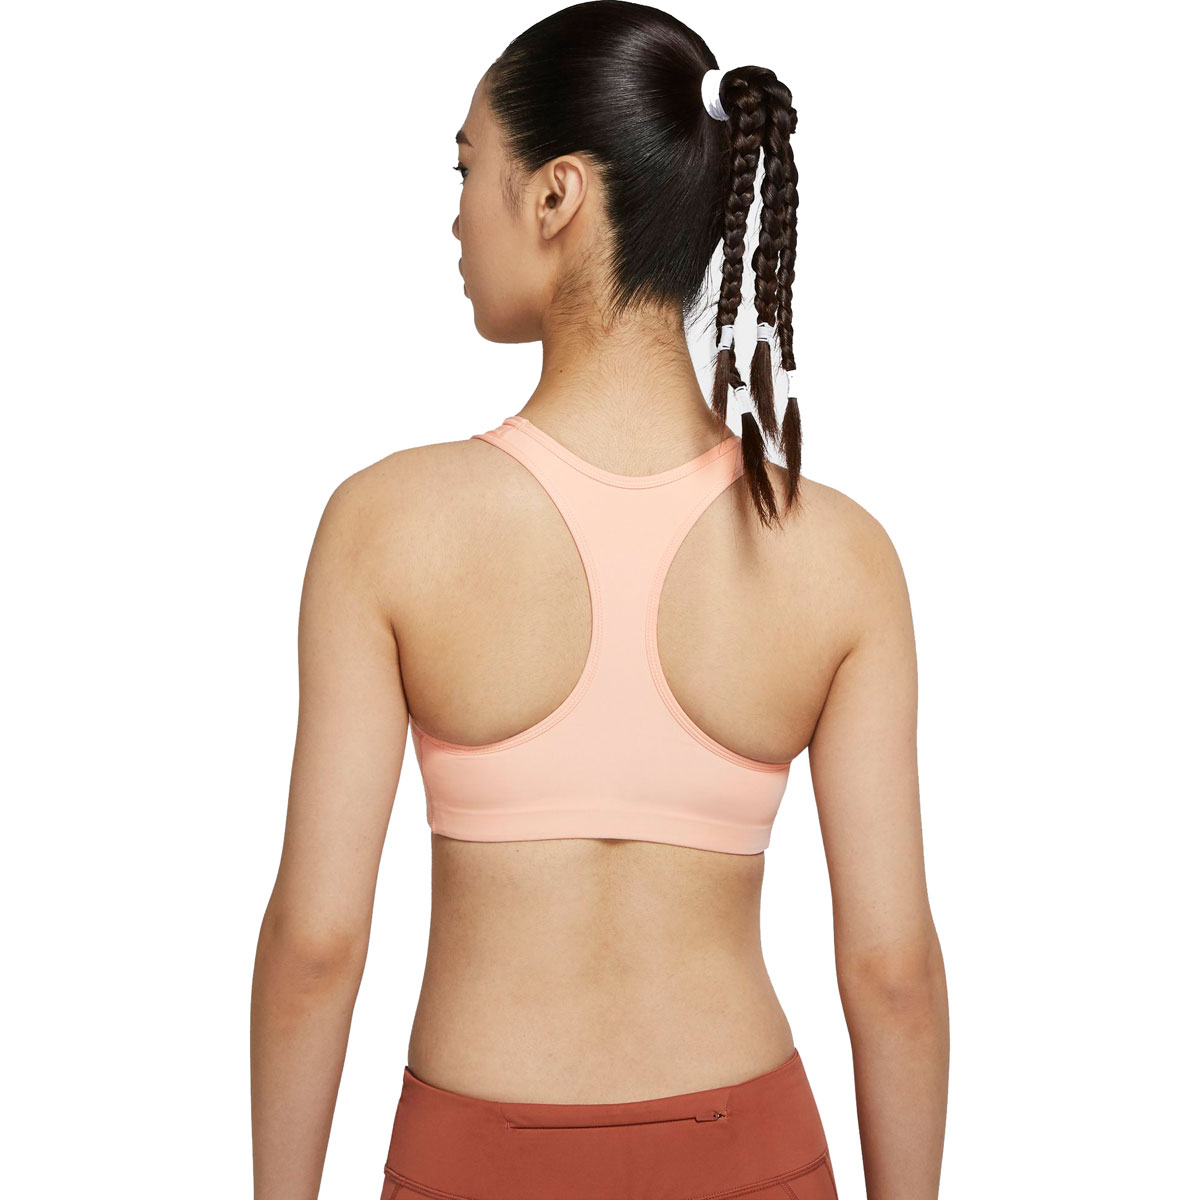 Women's Nike Swoosh Medium-Support 1-Piece Pad Sports Bra - Color: Washed Coral/Black - Size: S, Washed Coral/Black, large, image 2